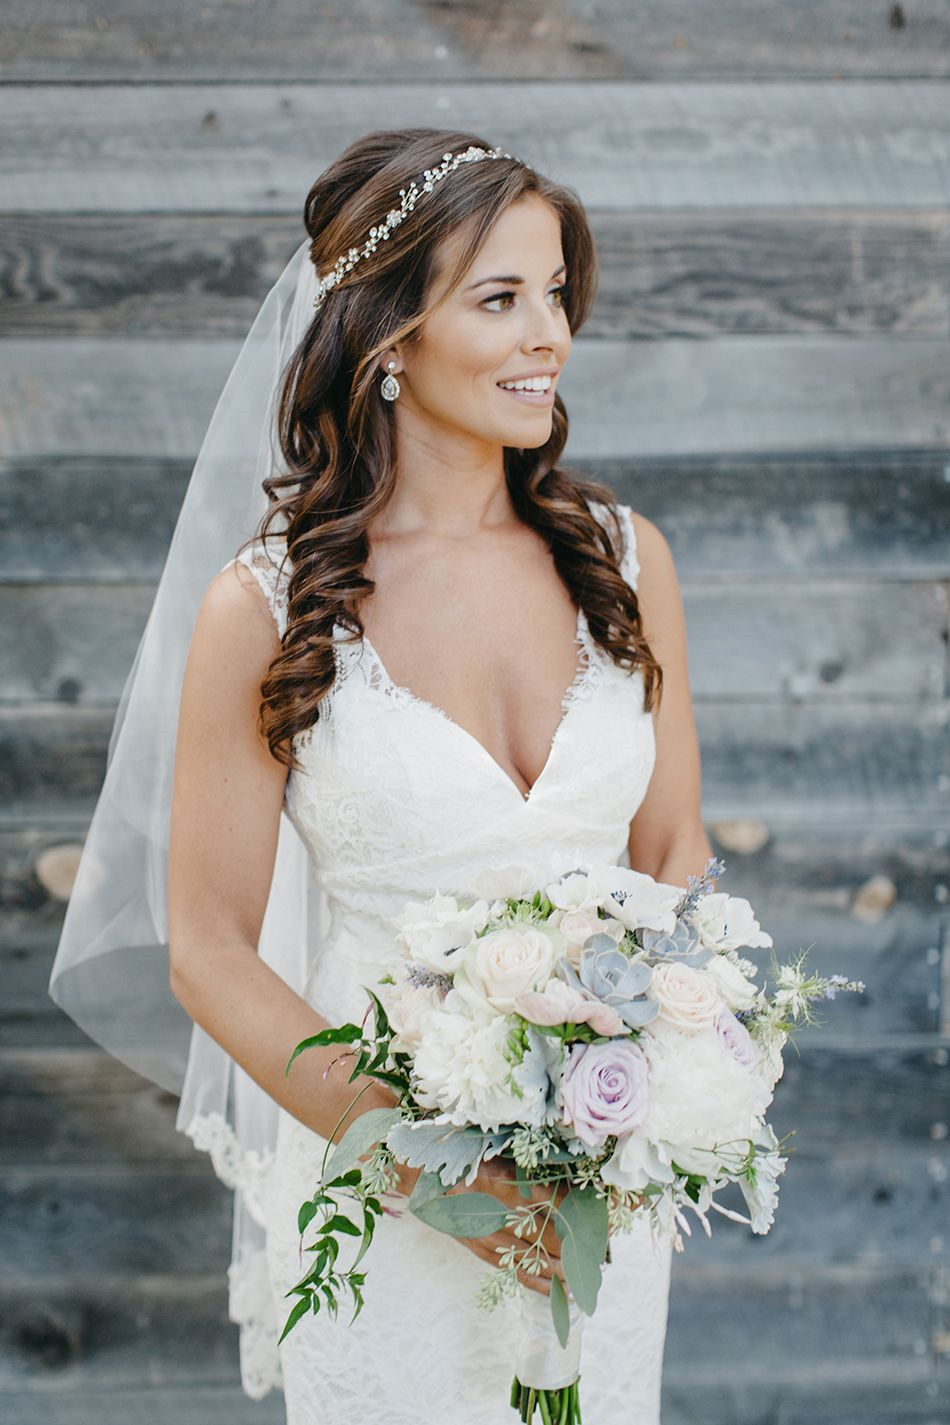 27 Wedding Hairstyles With Veil For Your Big Day -   11 hairstyles Wedding with veil ideas